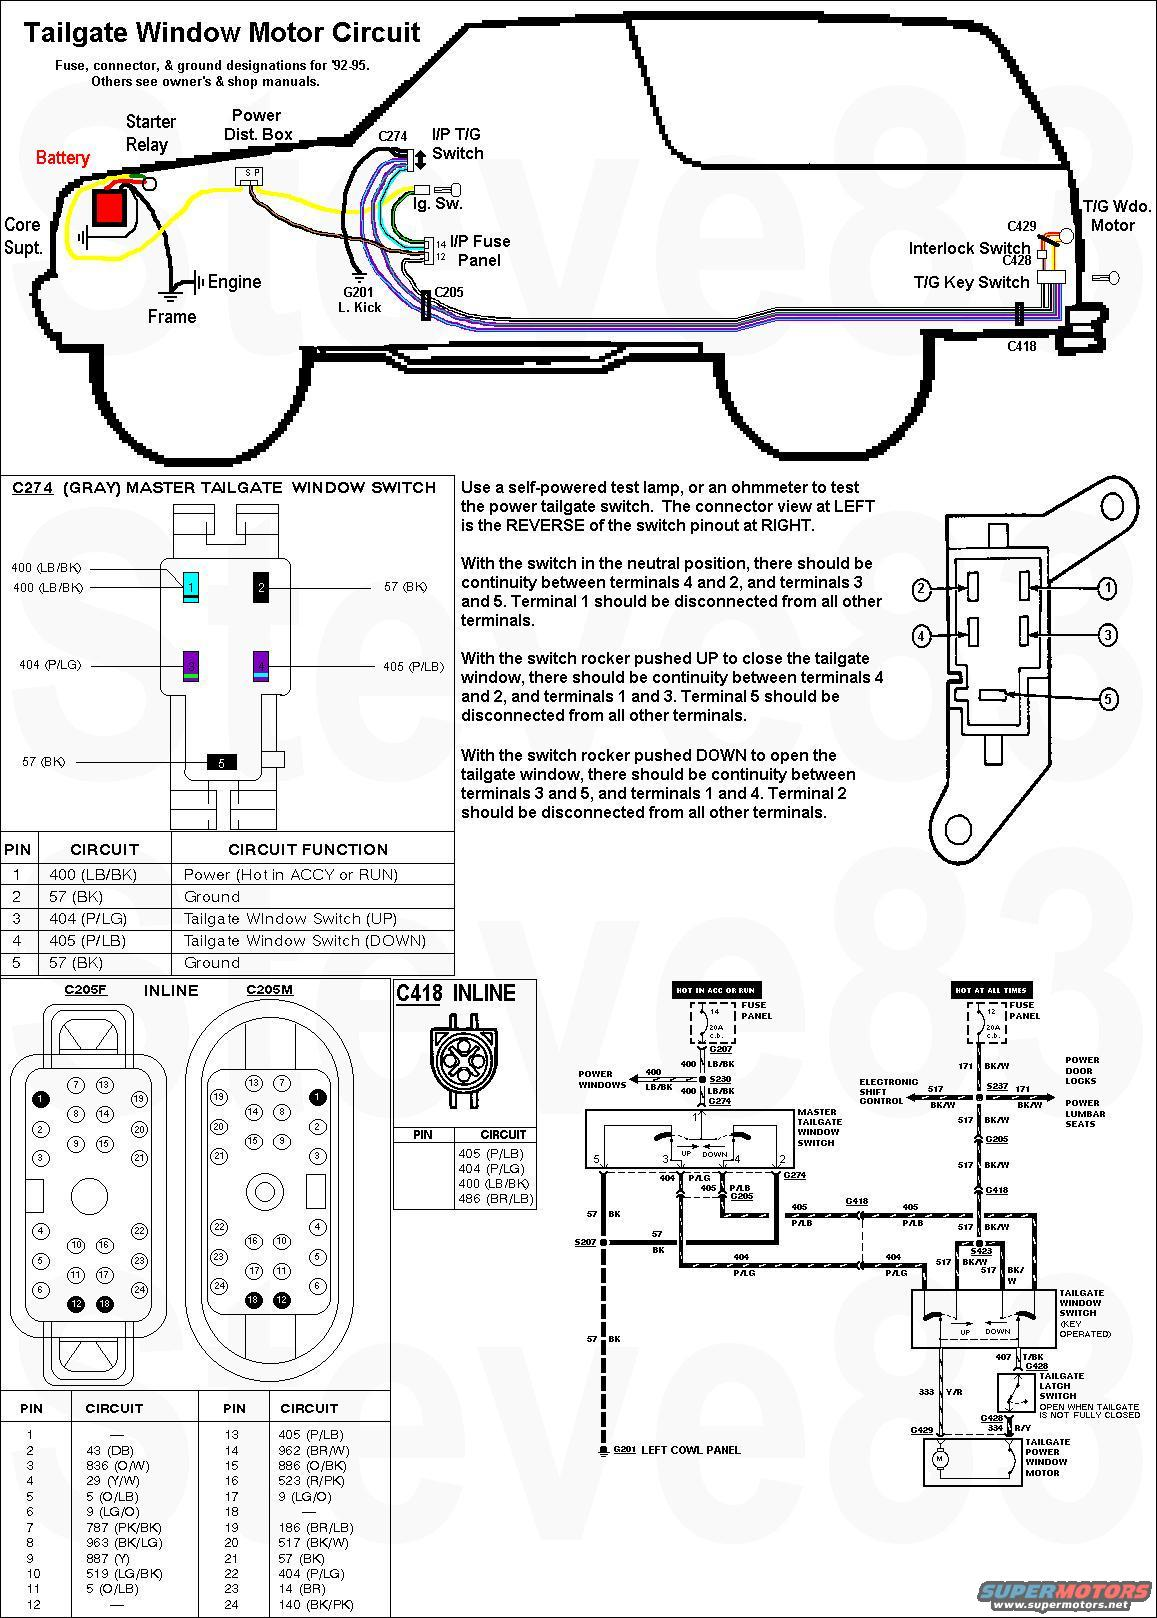 1977 Bronco Wiring Diagram, 1977, Free Engine Image For